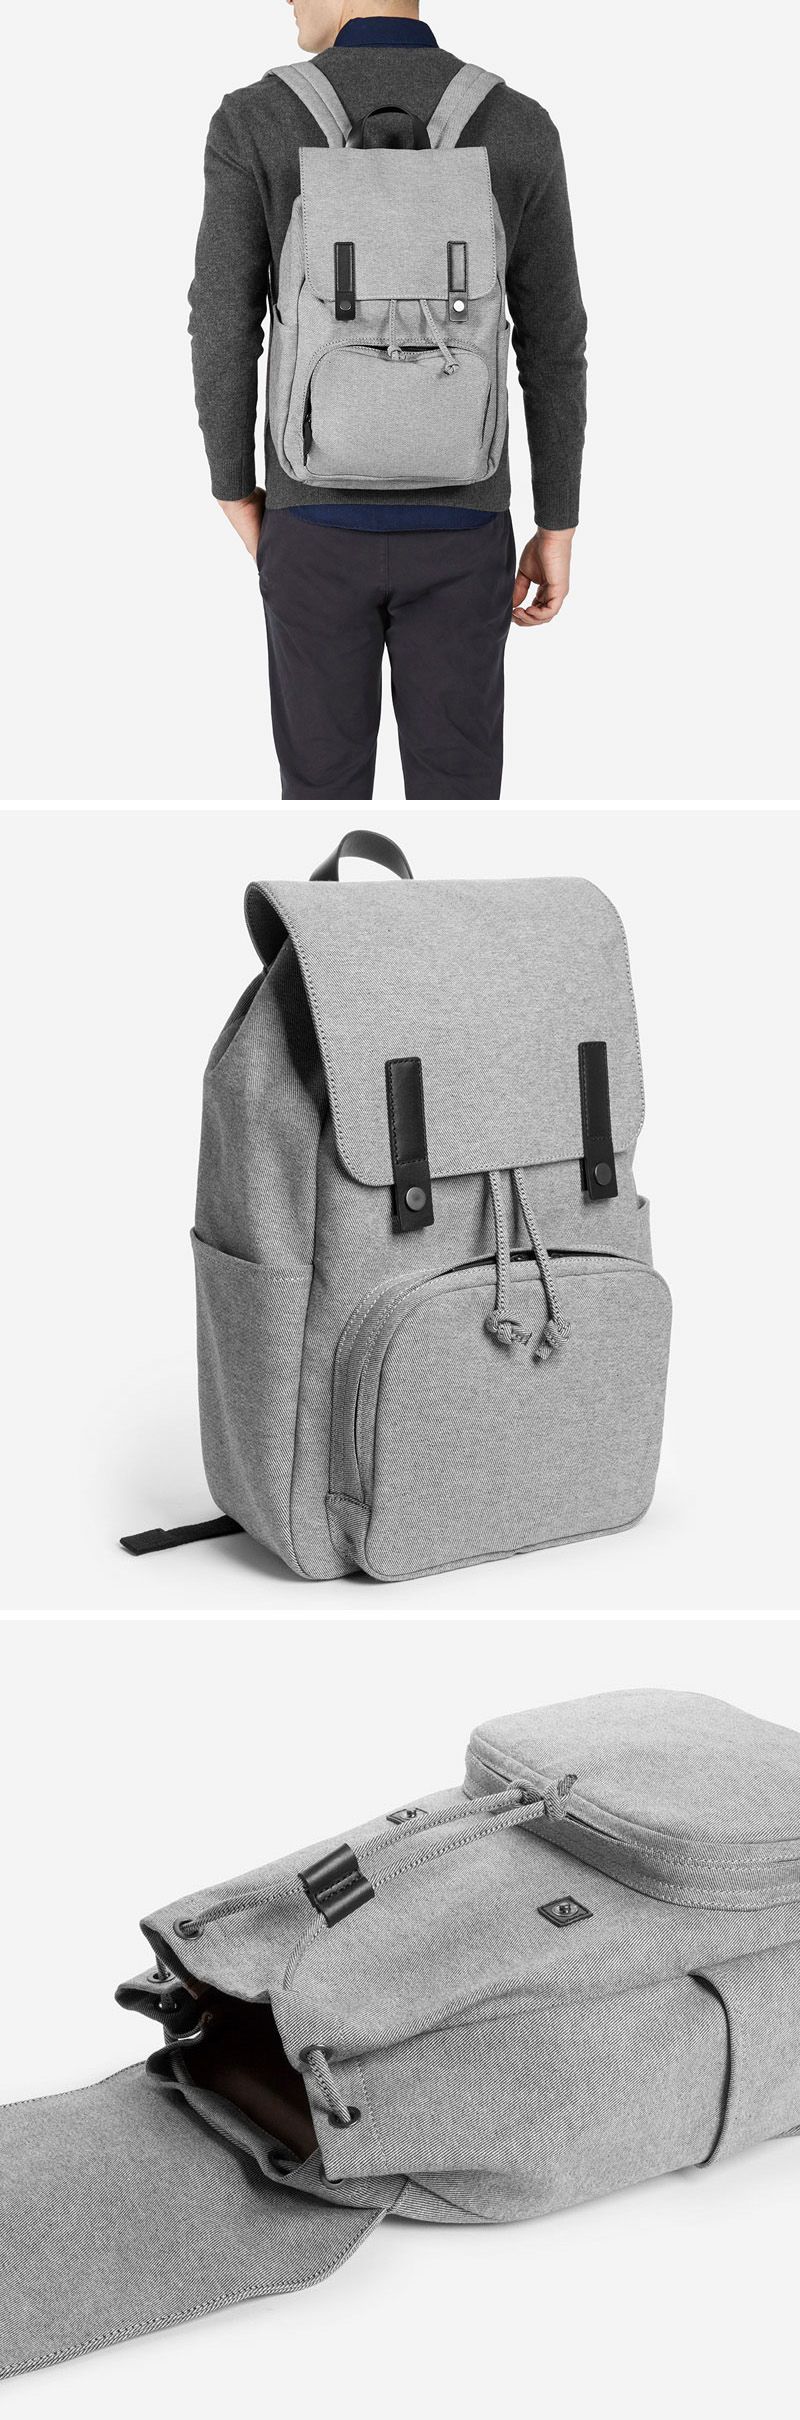 This modern grey backpack has all the components of the perfect everyday bag - comfortable straps, ample storage, and water-resistant material on the exterior to keep all your things protected.